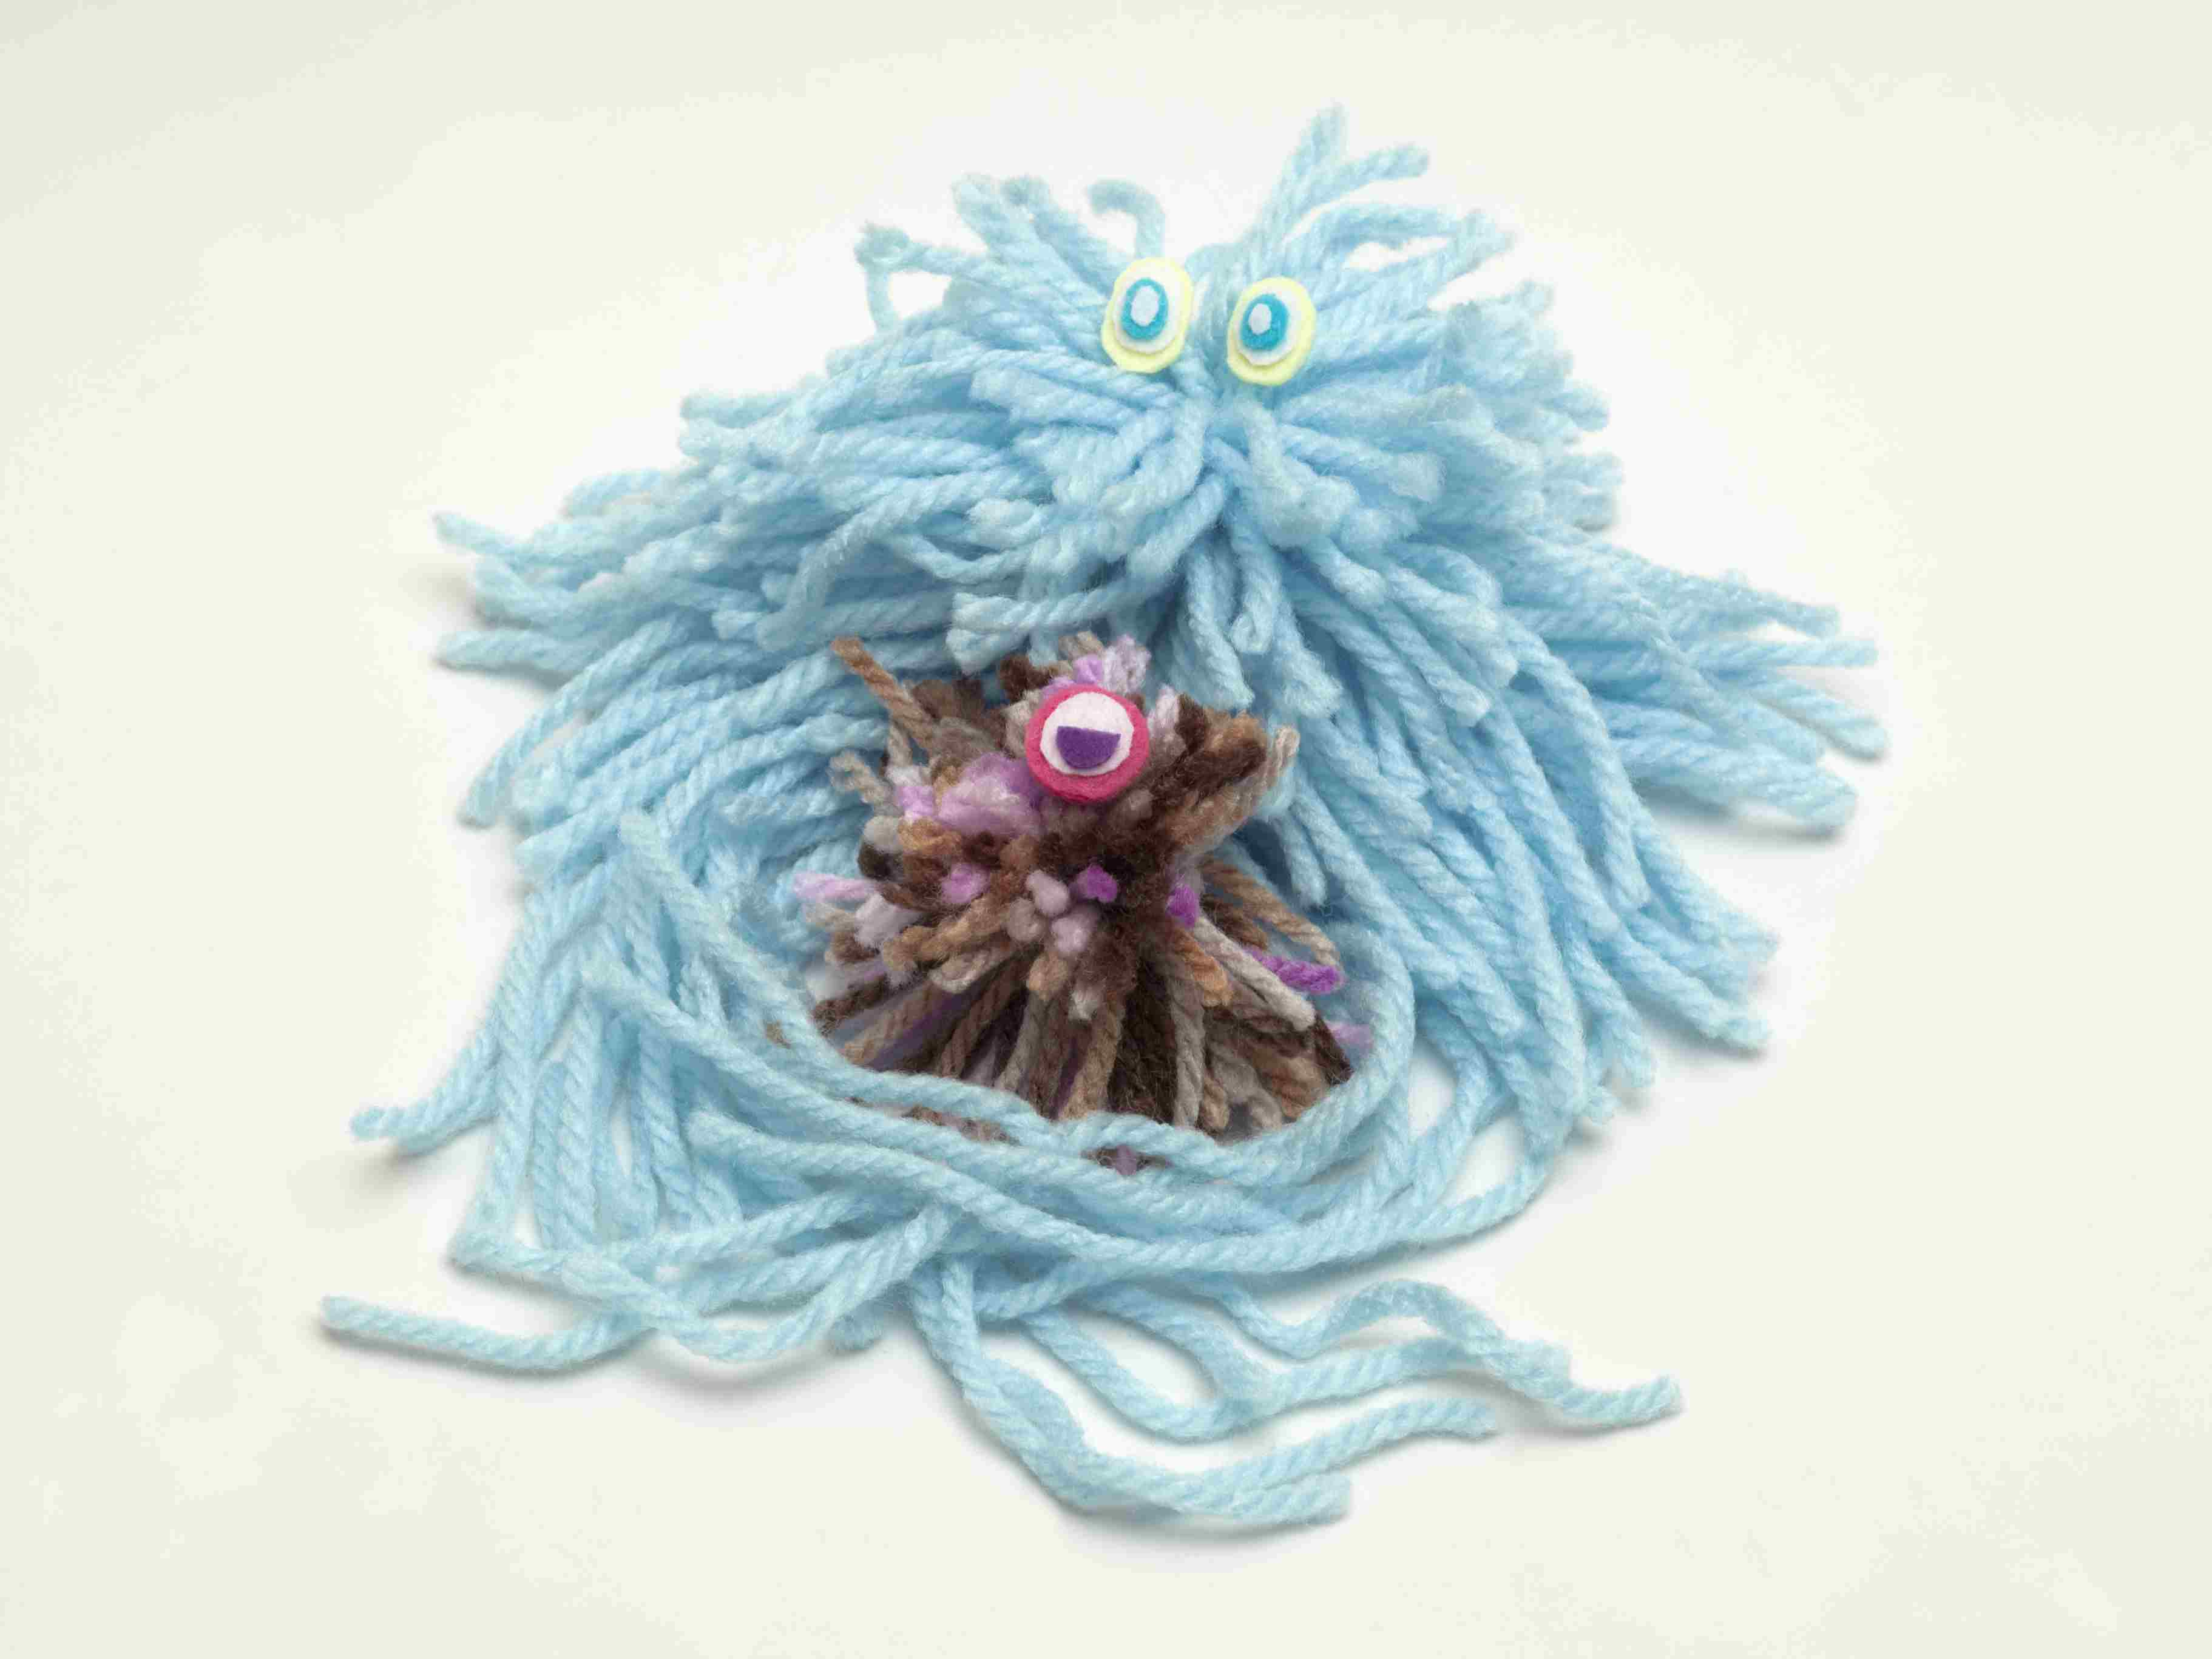 Wool doll natural killer cell engulging a wool cancer cell